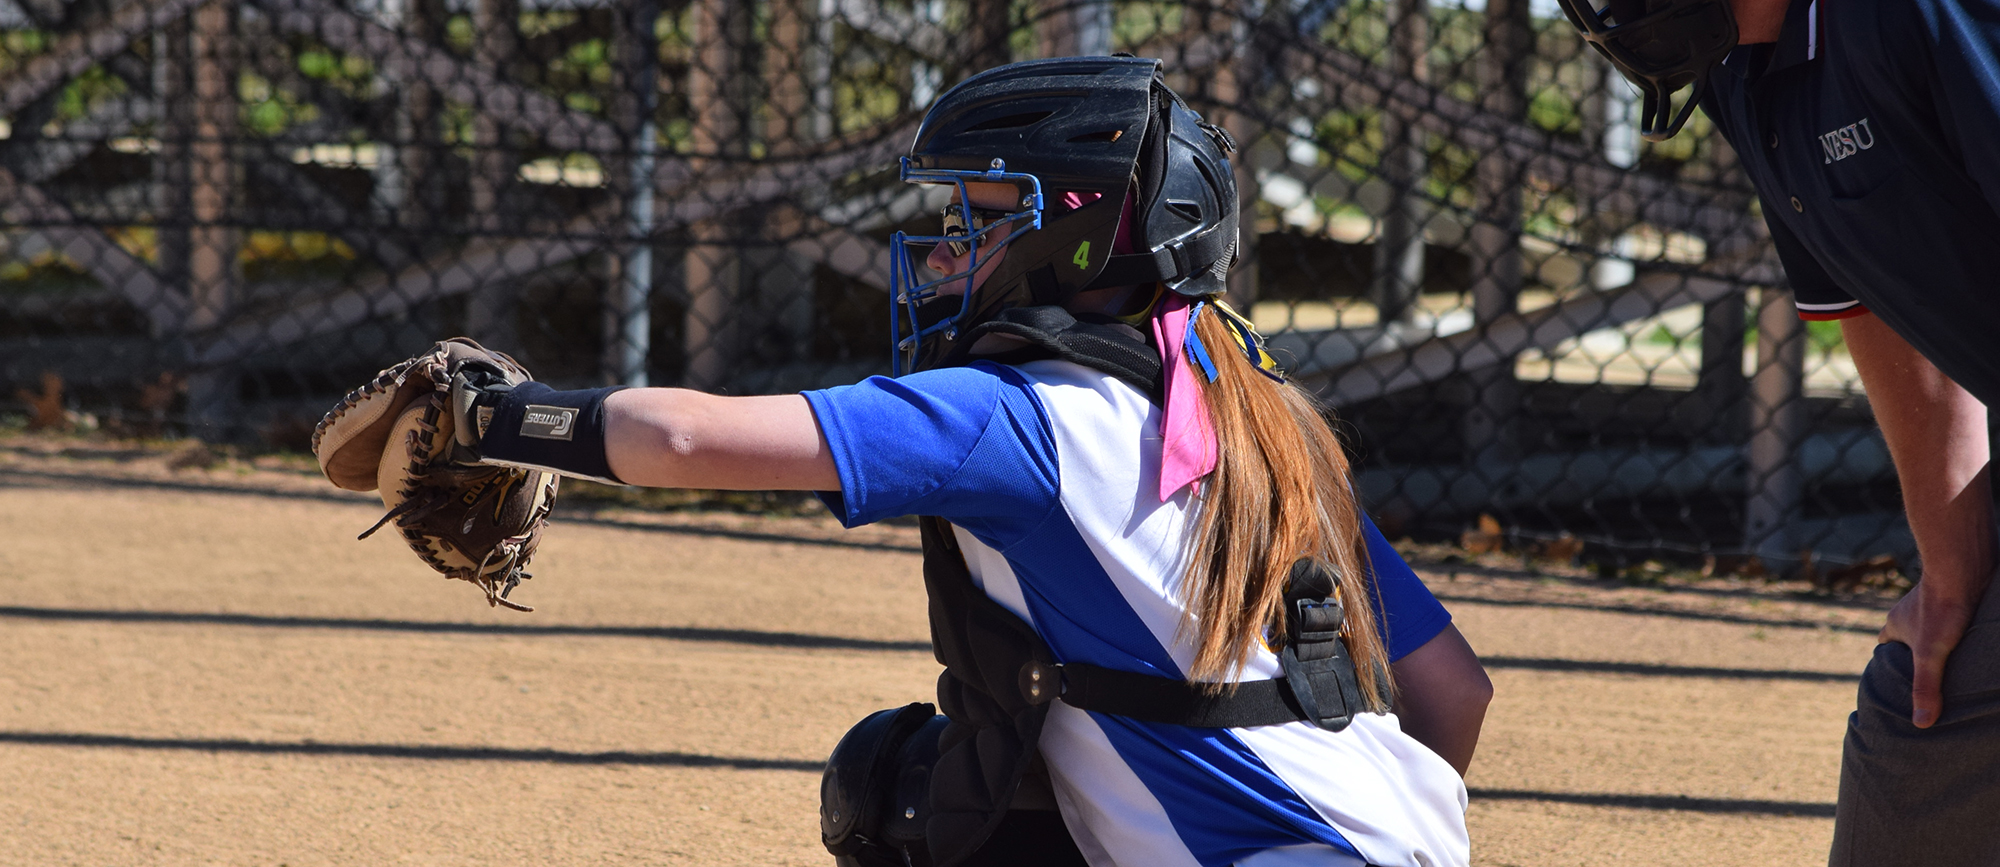 Junior Jenn Luba recorded three hits and four RBI during Western New England's doubleheader split with Nichols on Thursday. (Photo by Rachael Margossian)